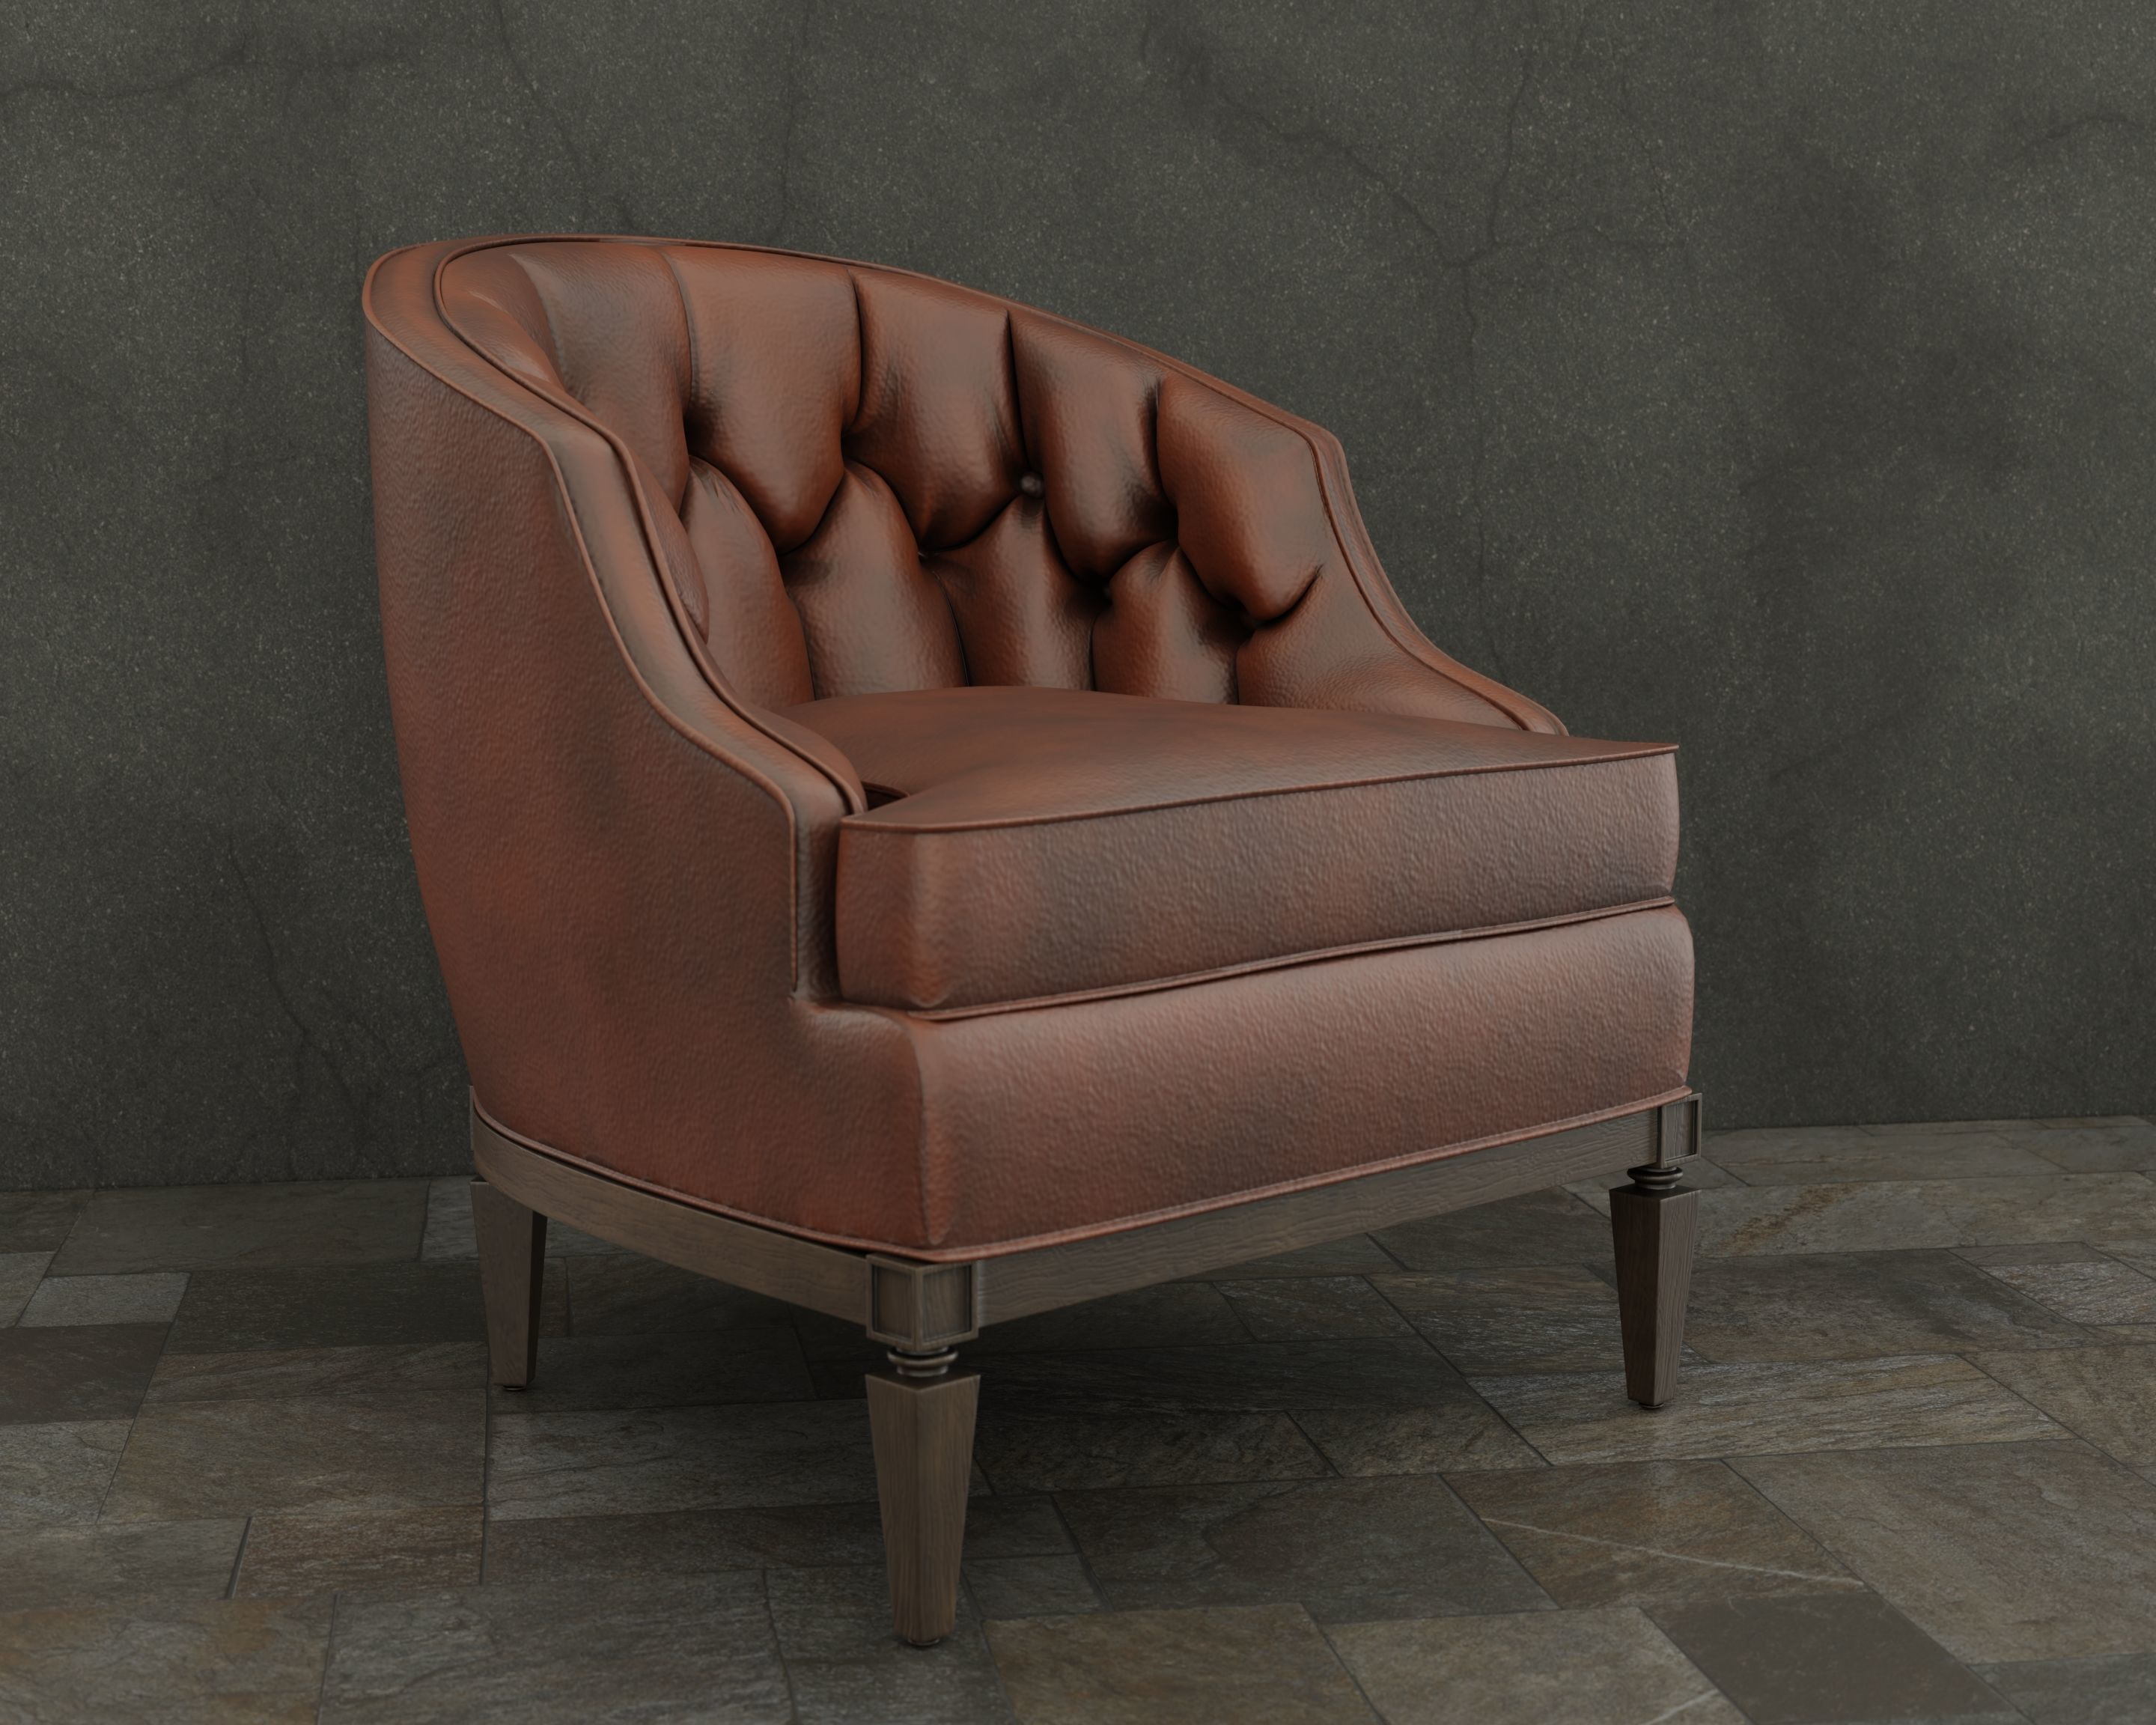 Leather Armchair - for game and visualization 3D model